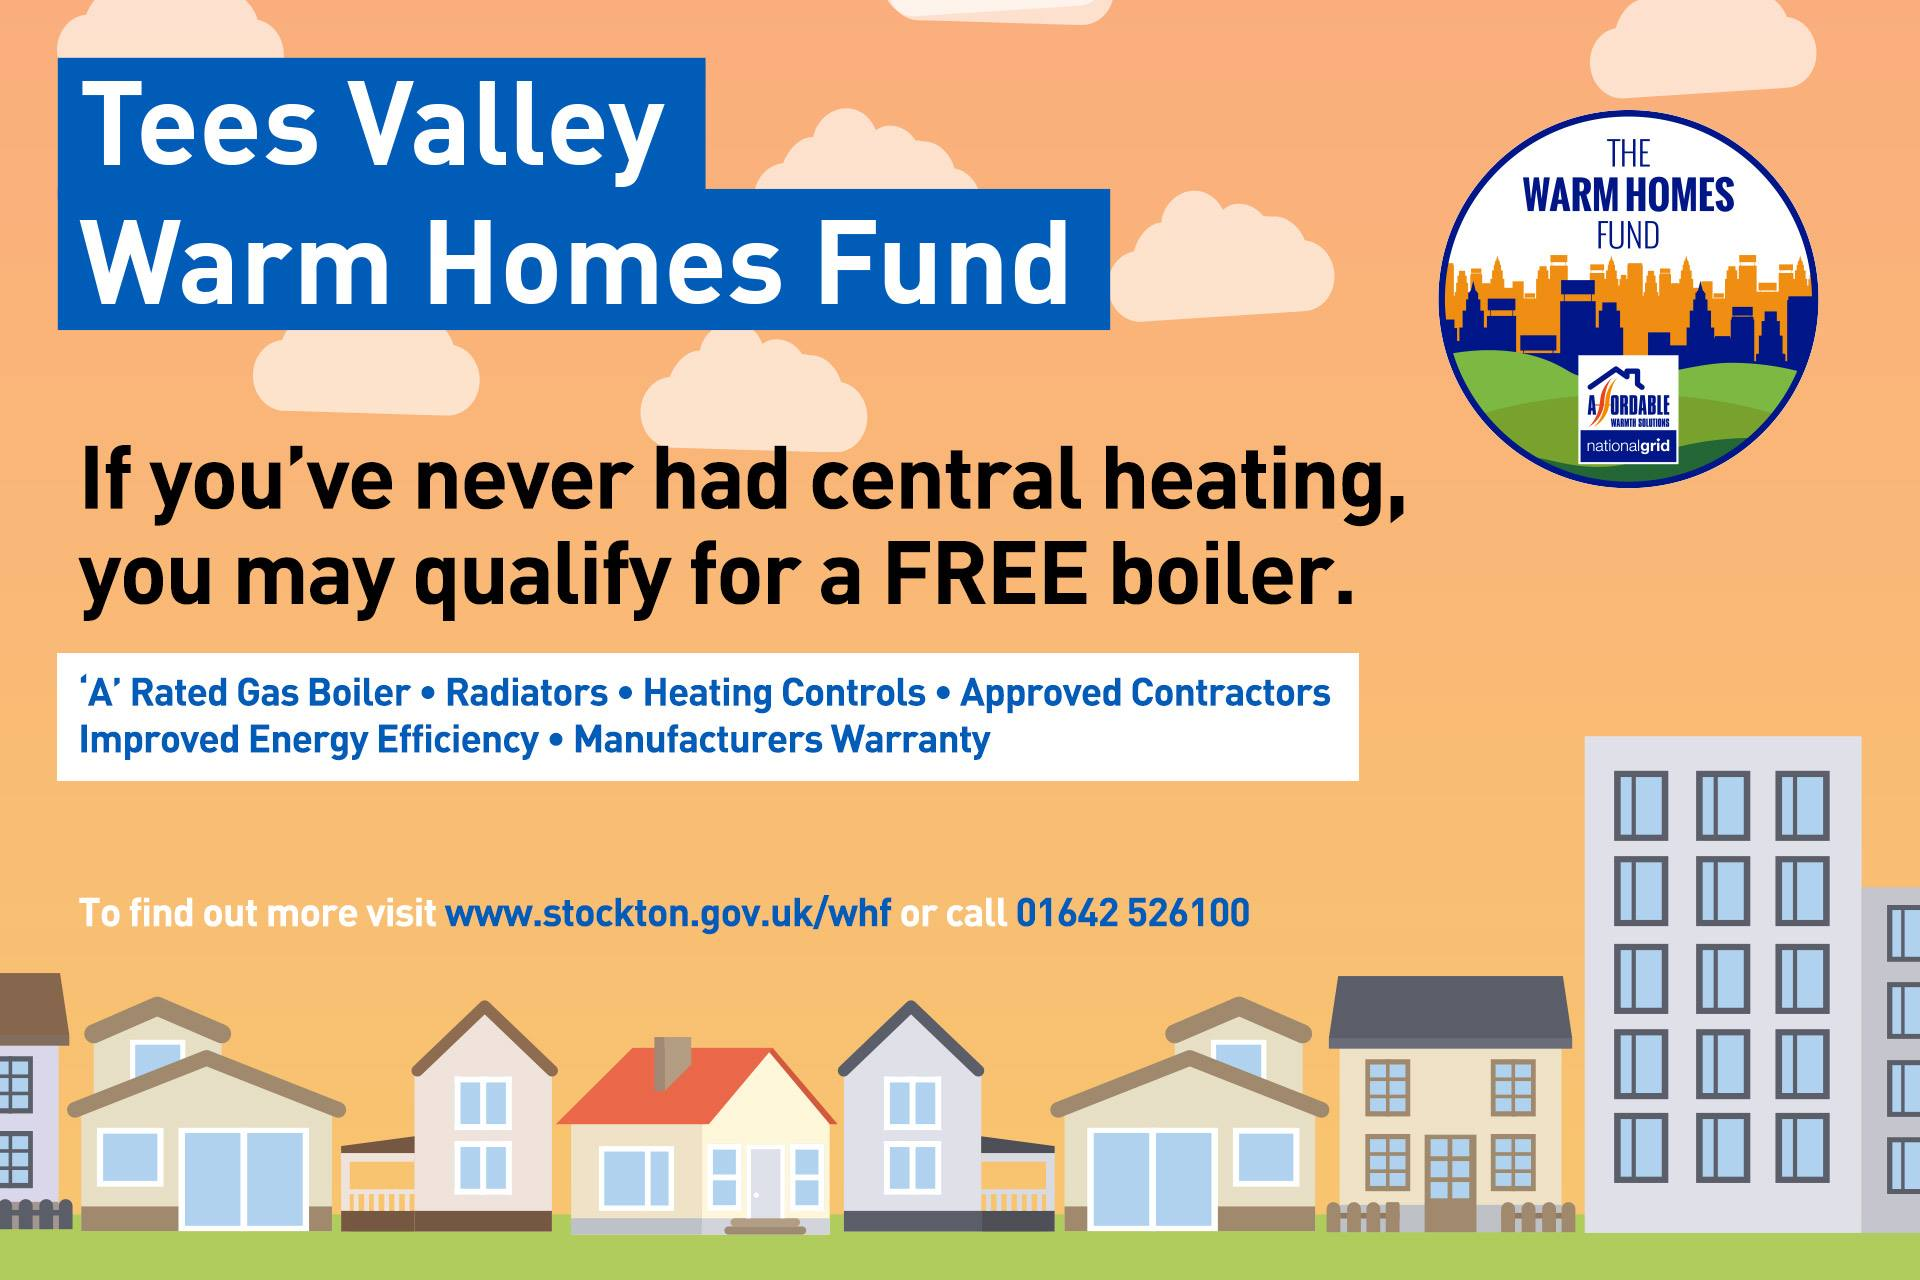 Tees Valley Warm Homes Fund